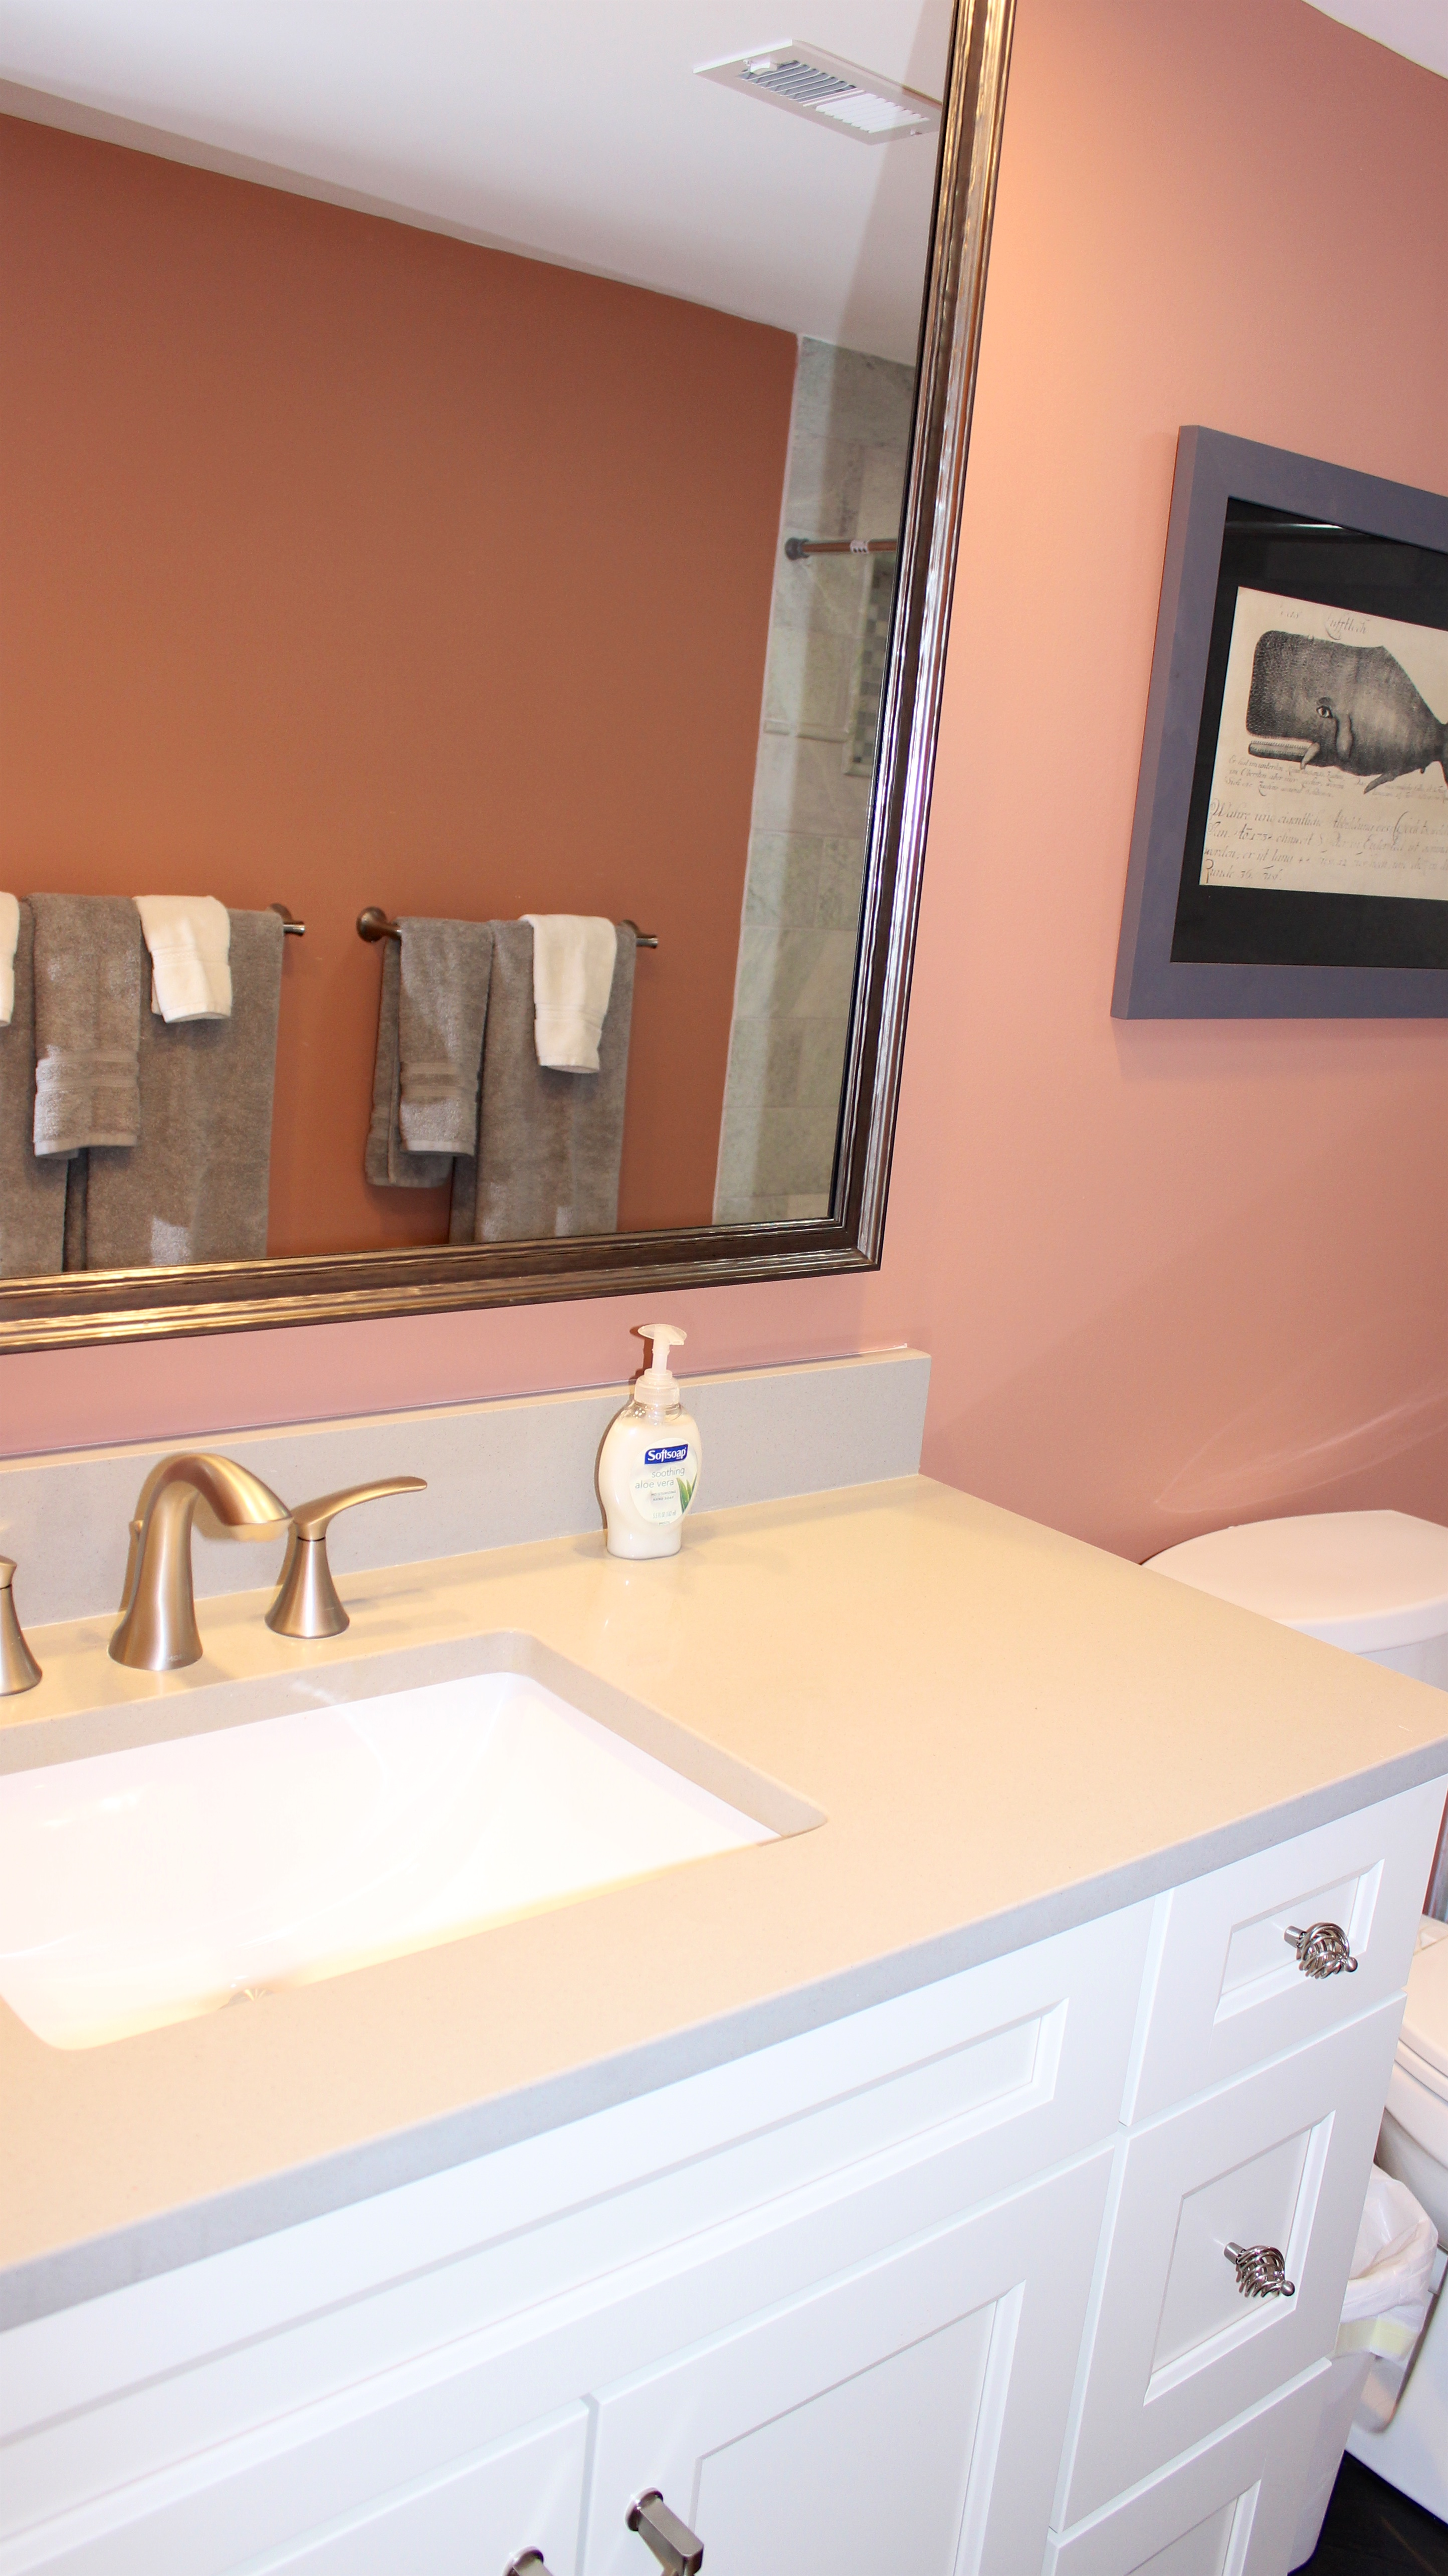 The master bath has a large vanity topped with granite.